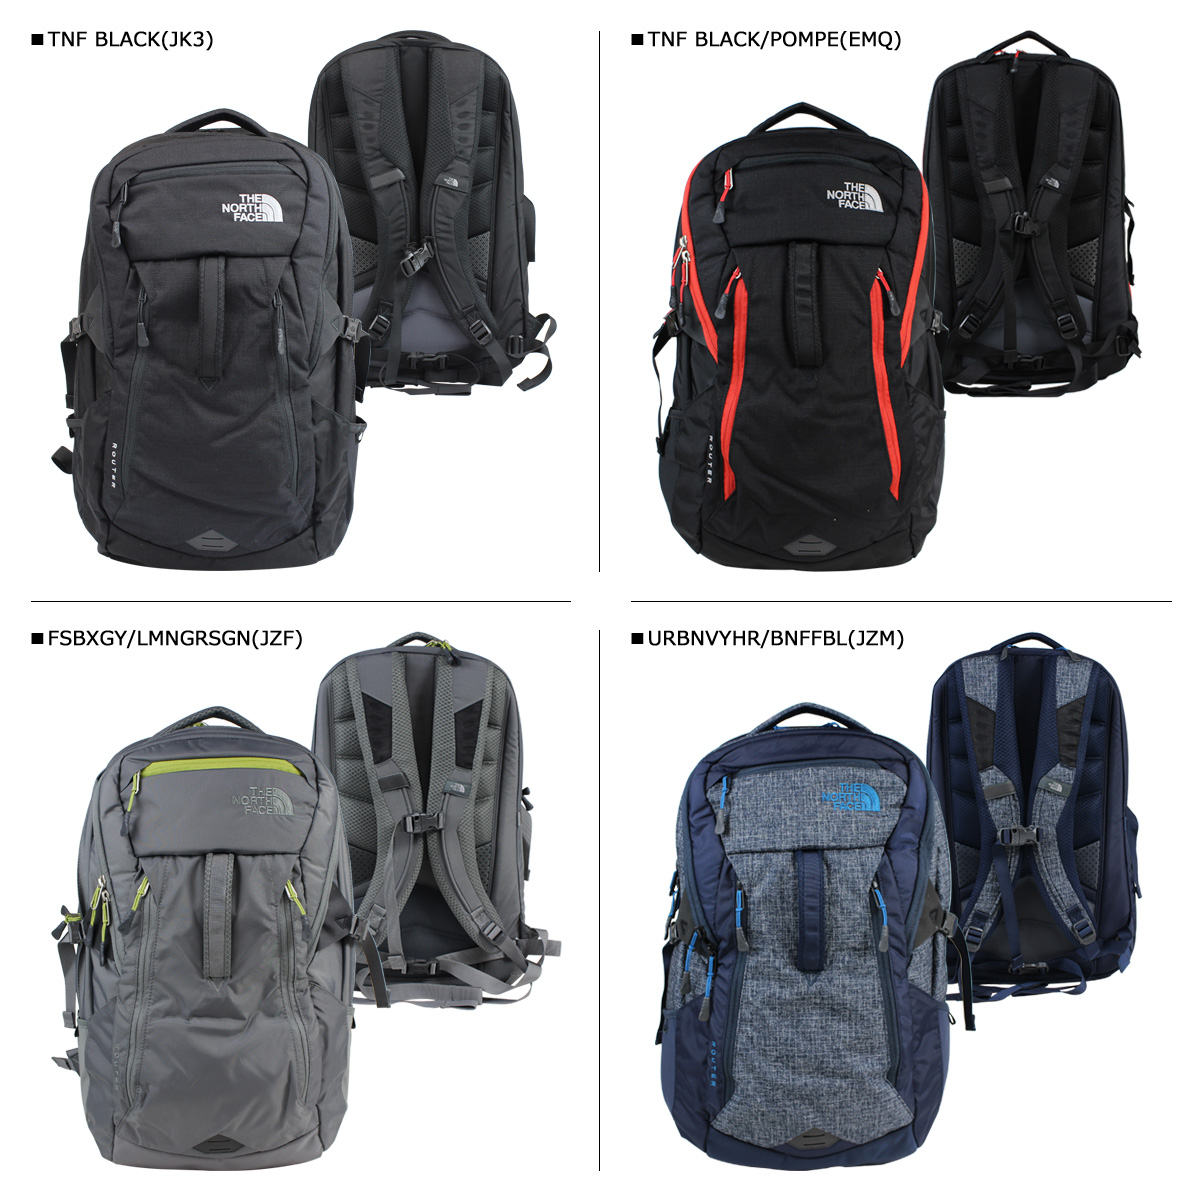 8831854a2 THE NORTH FACE north face rucksack backpack ROUTER BACKPACK 35L LH3C mens  ladies [8/2 Add in stock]